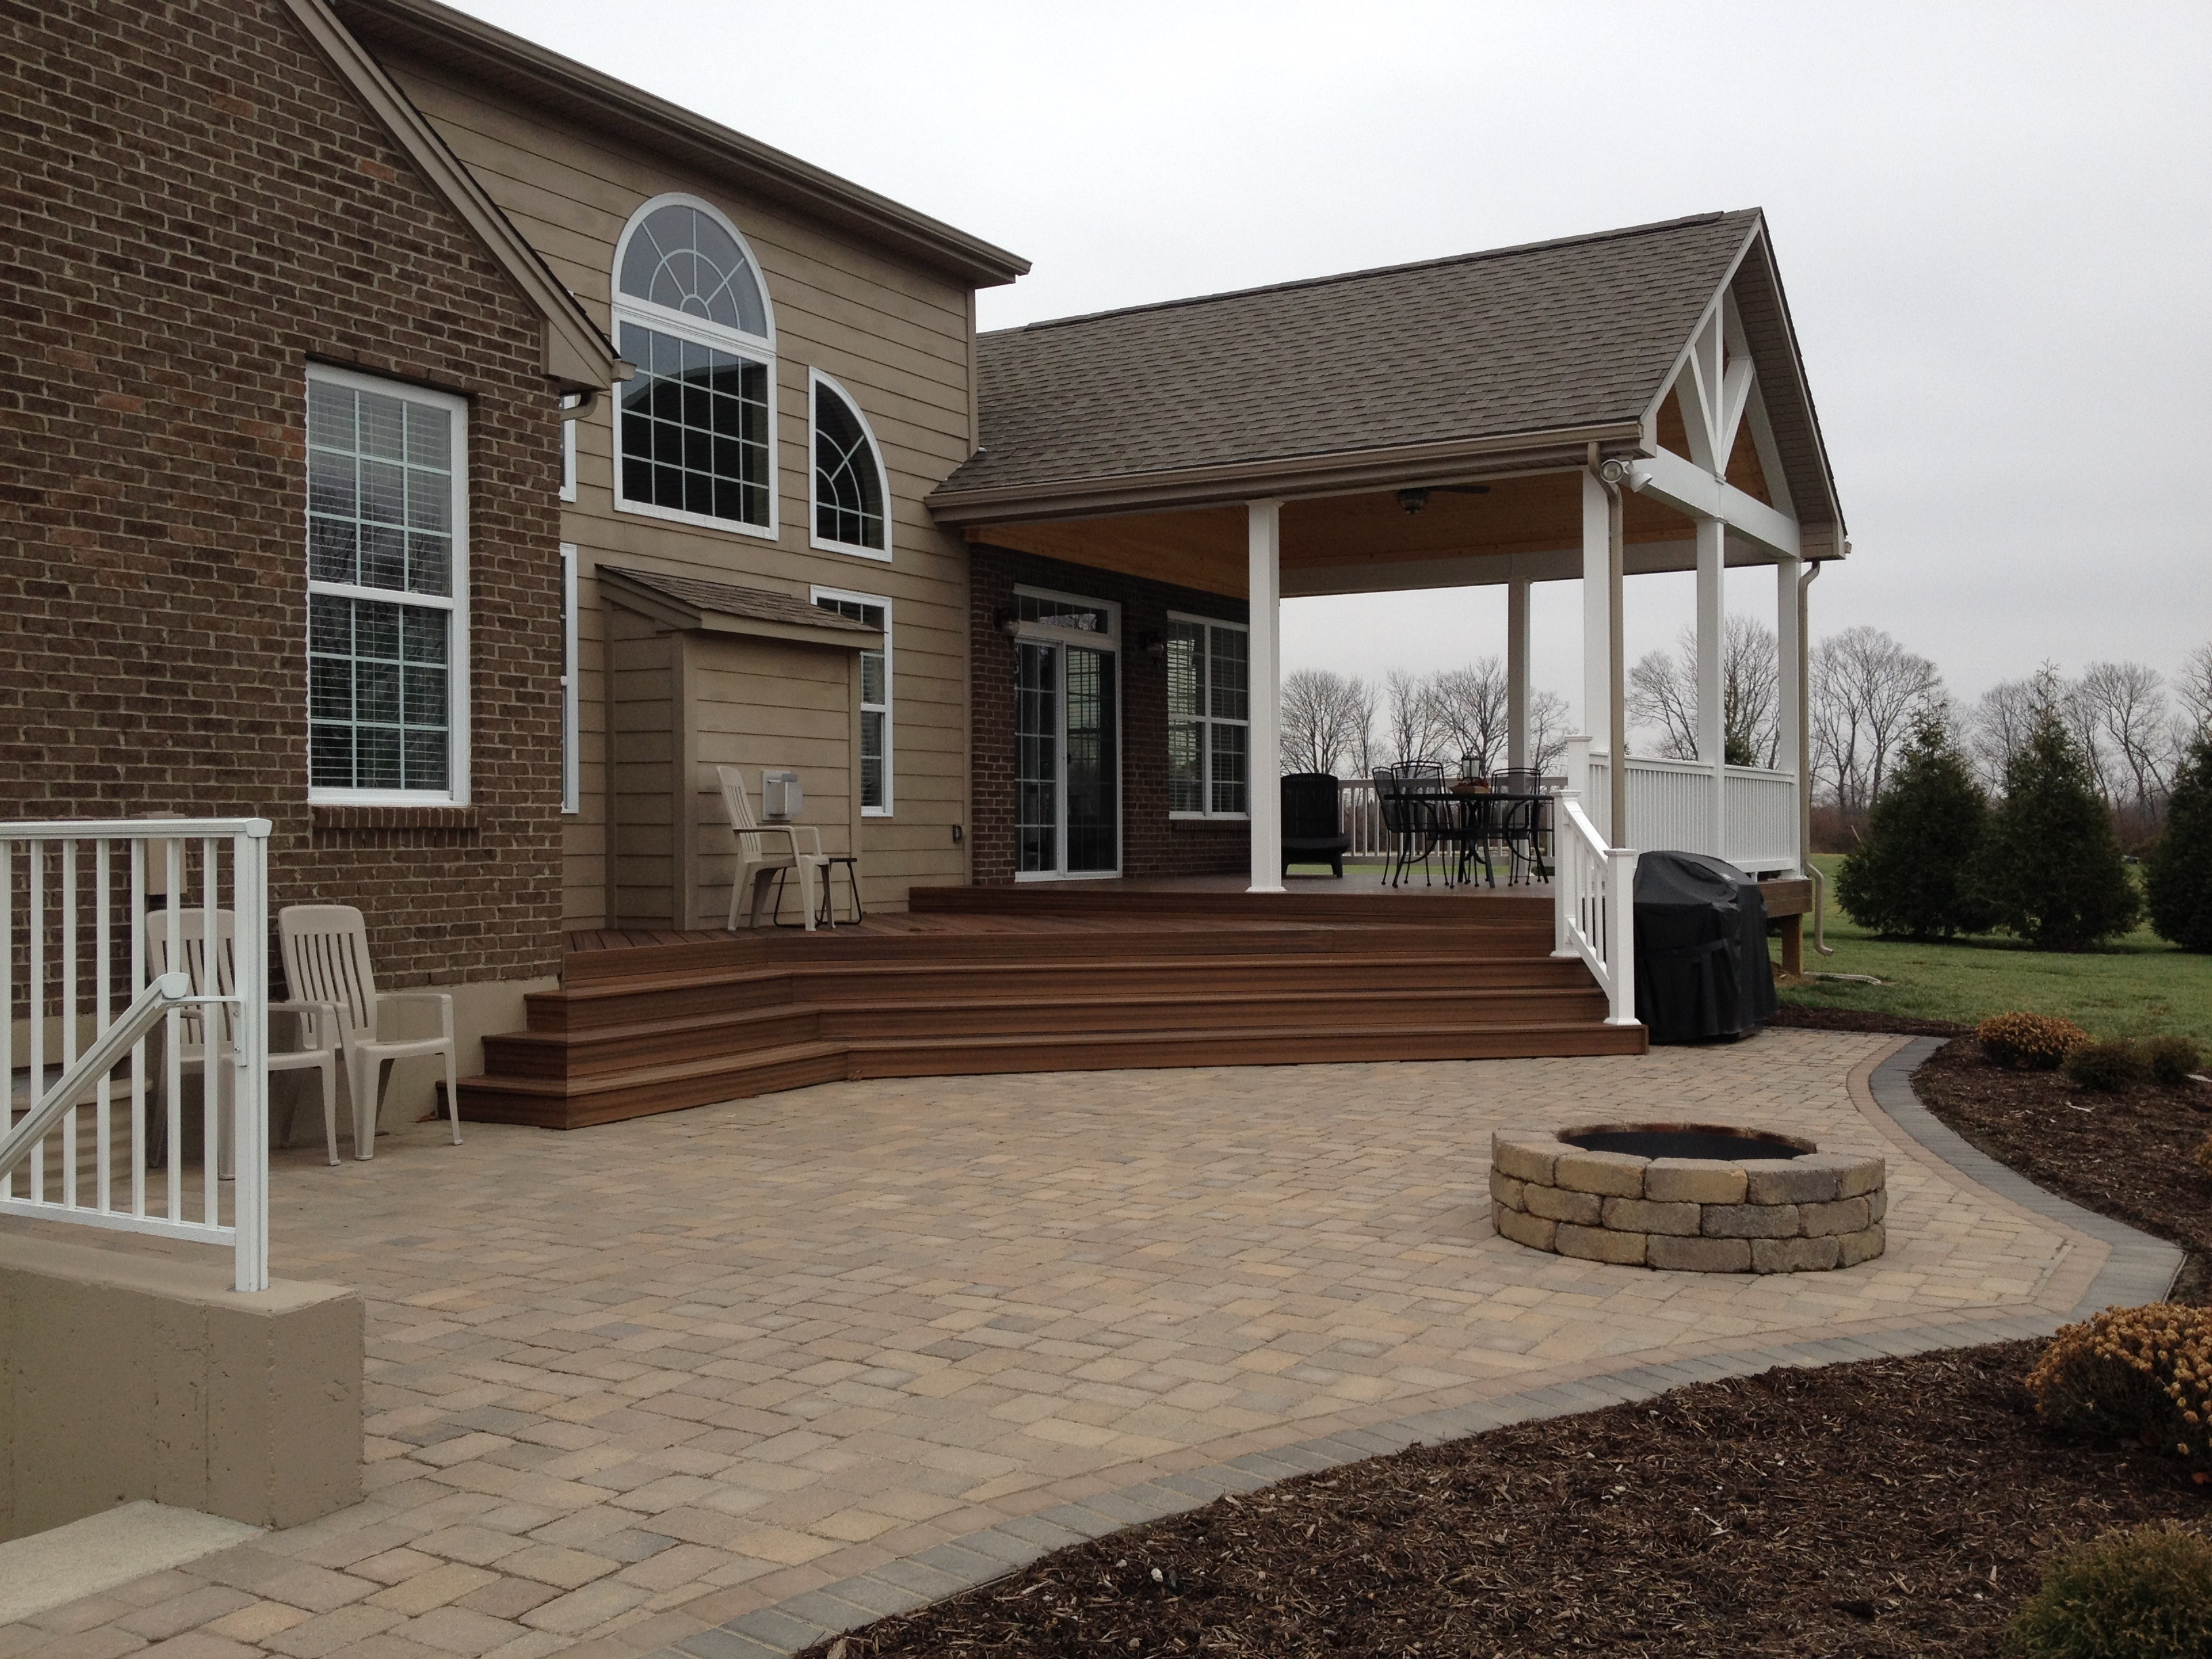 Our Awe Inspiring Combination Project In Clear Creek Township, OH Was The  Winning Design For The CotY In The Category Of Residential Exterior  Projects In ...